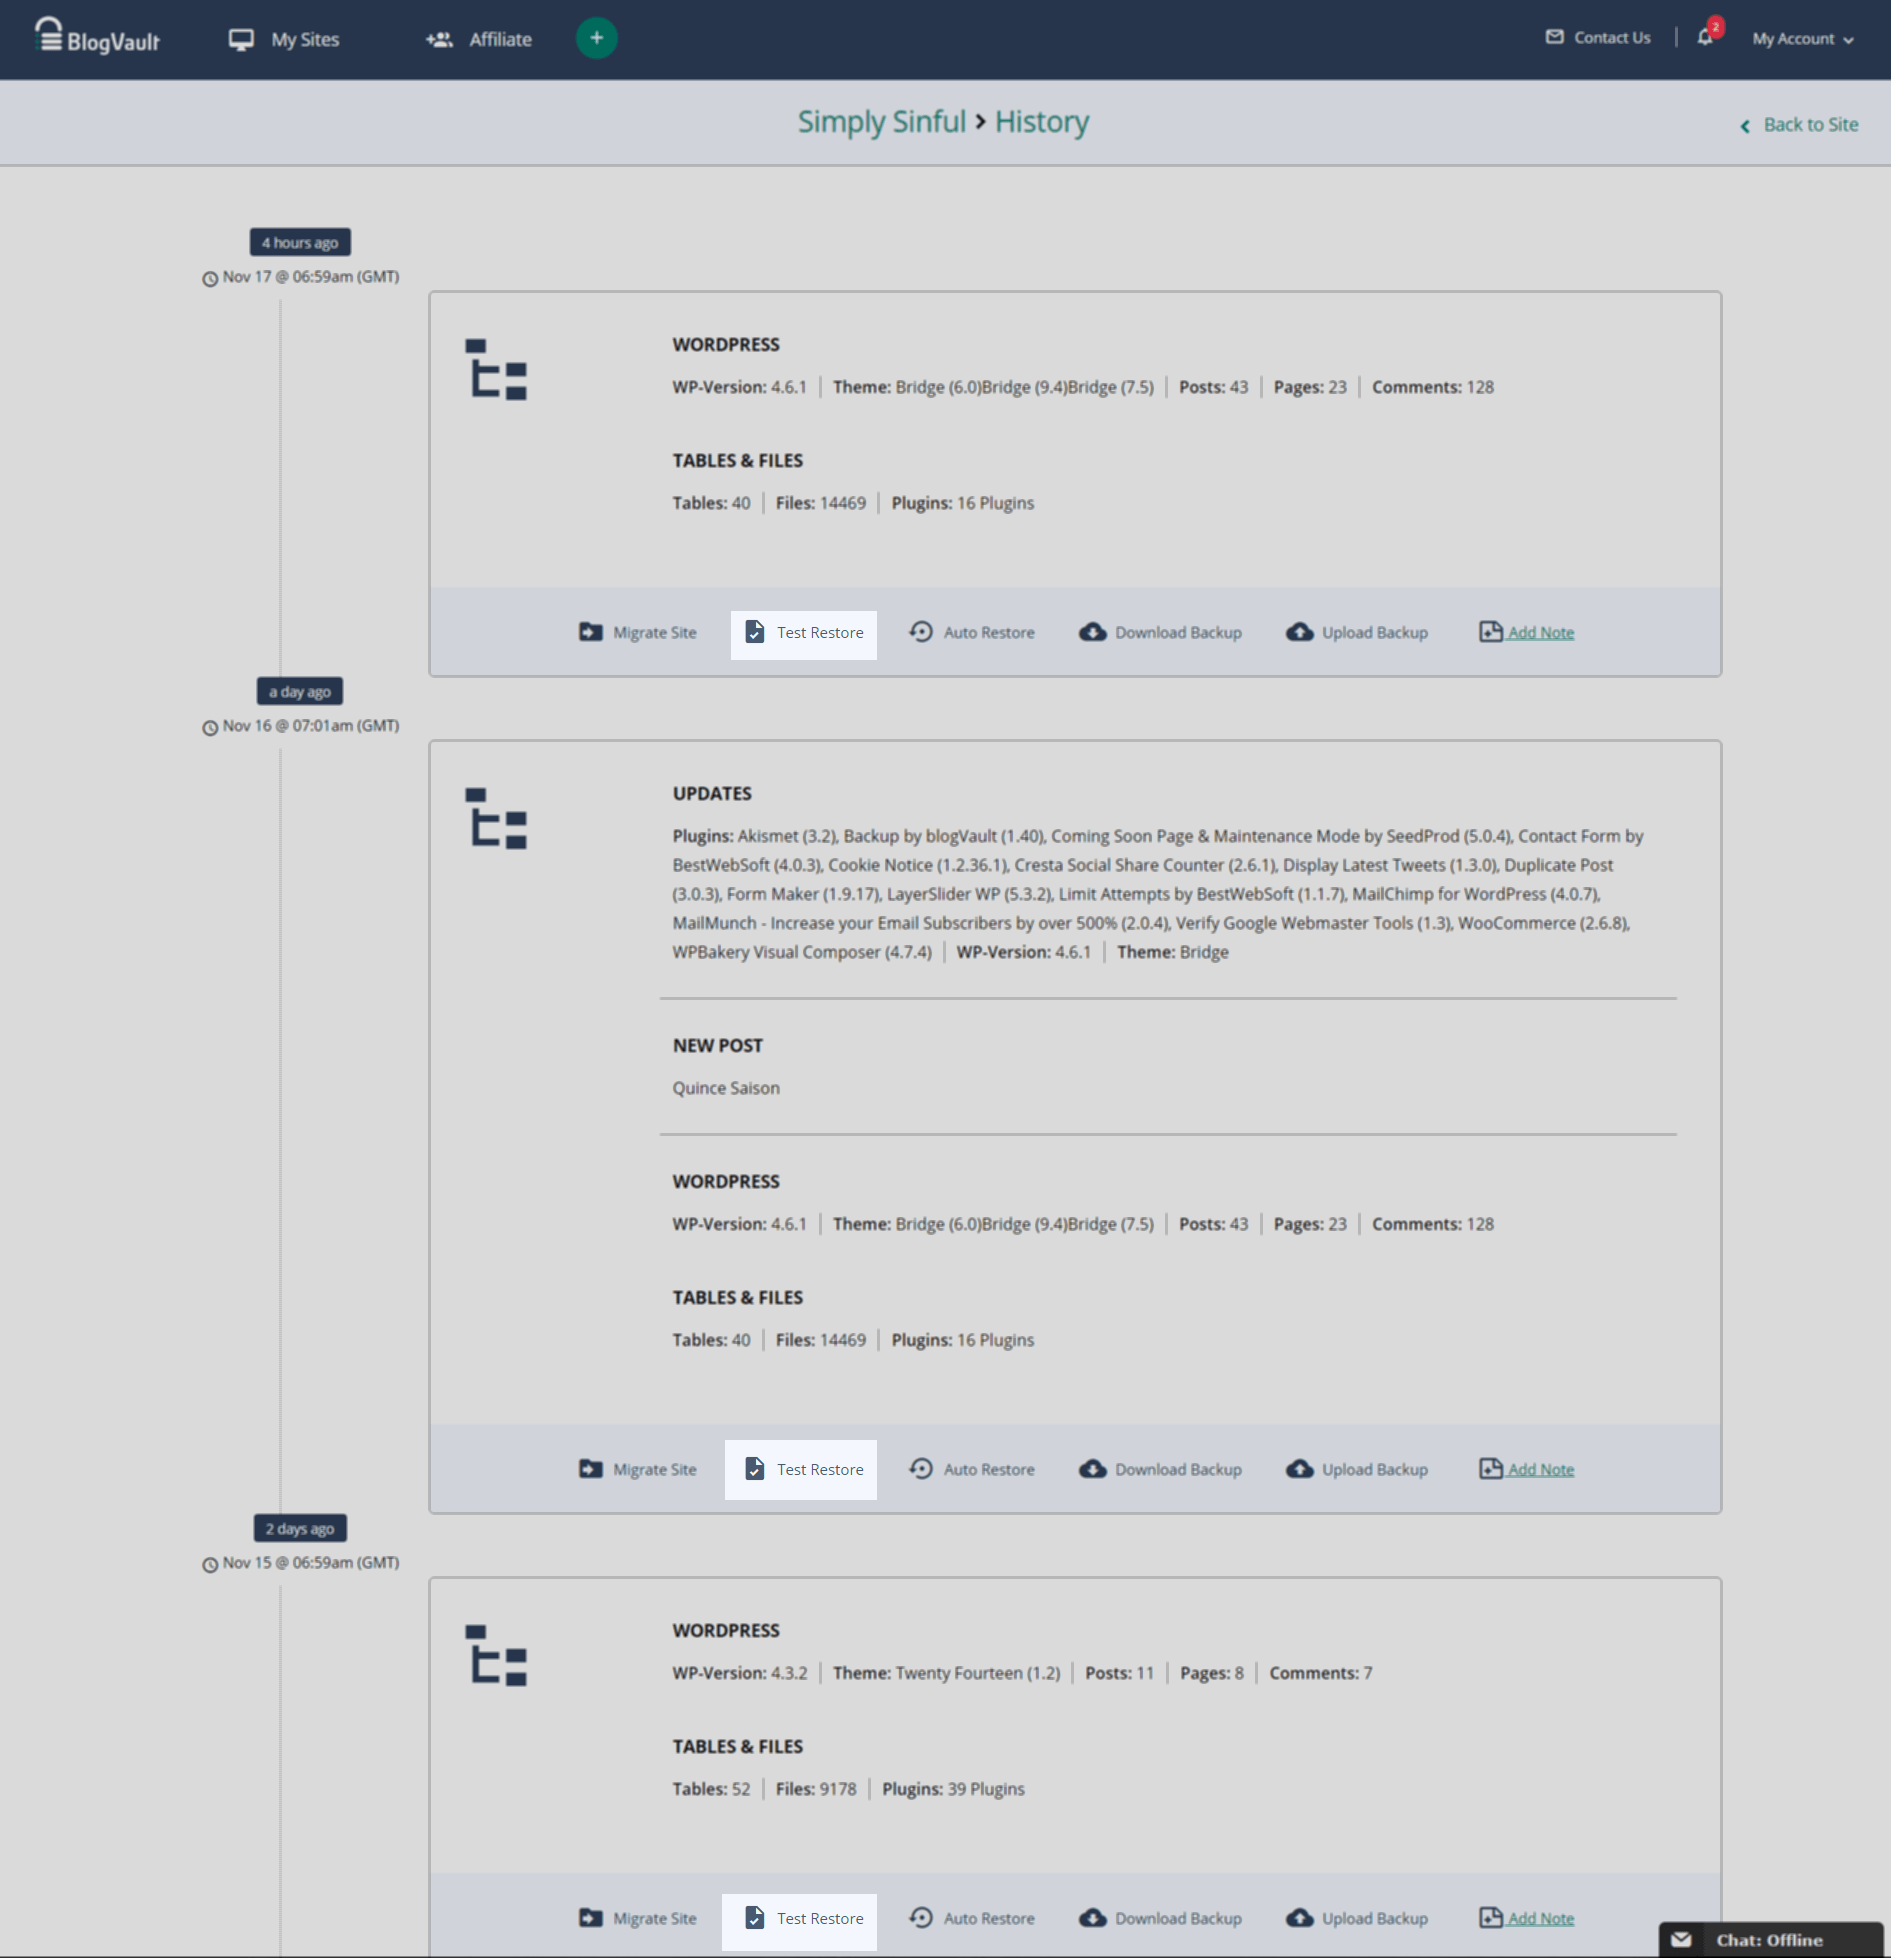 You can test any of the backup versions of your site from the History feature